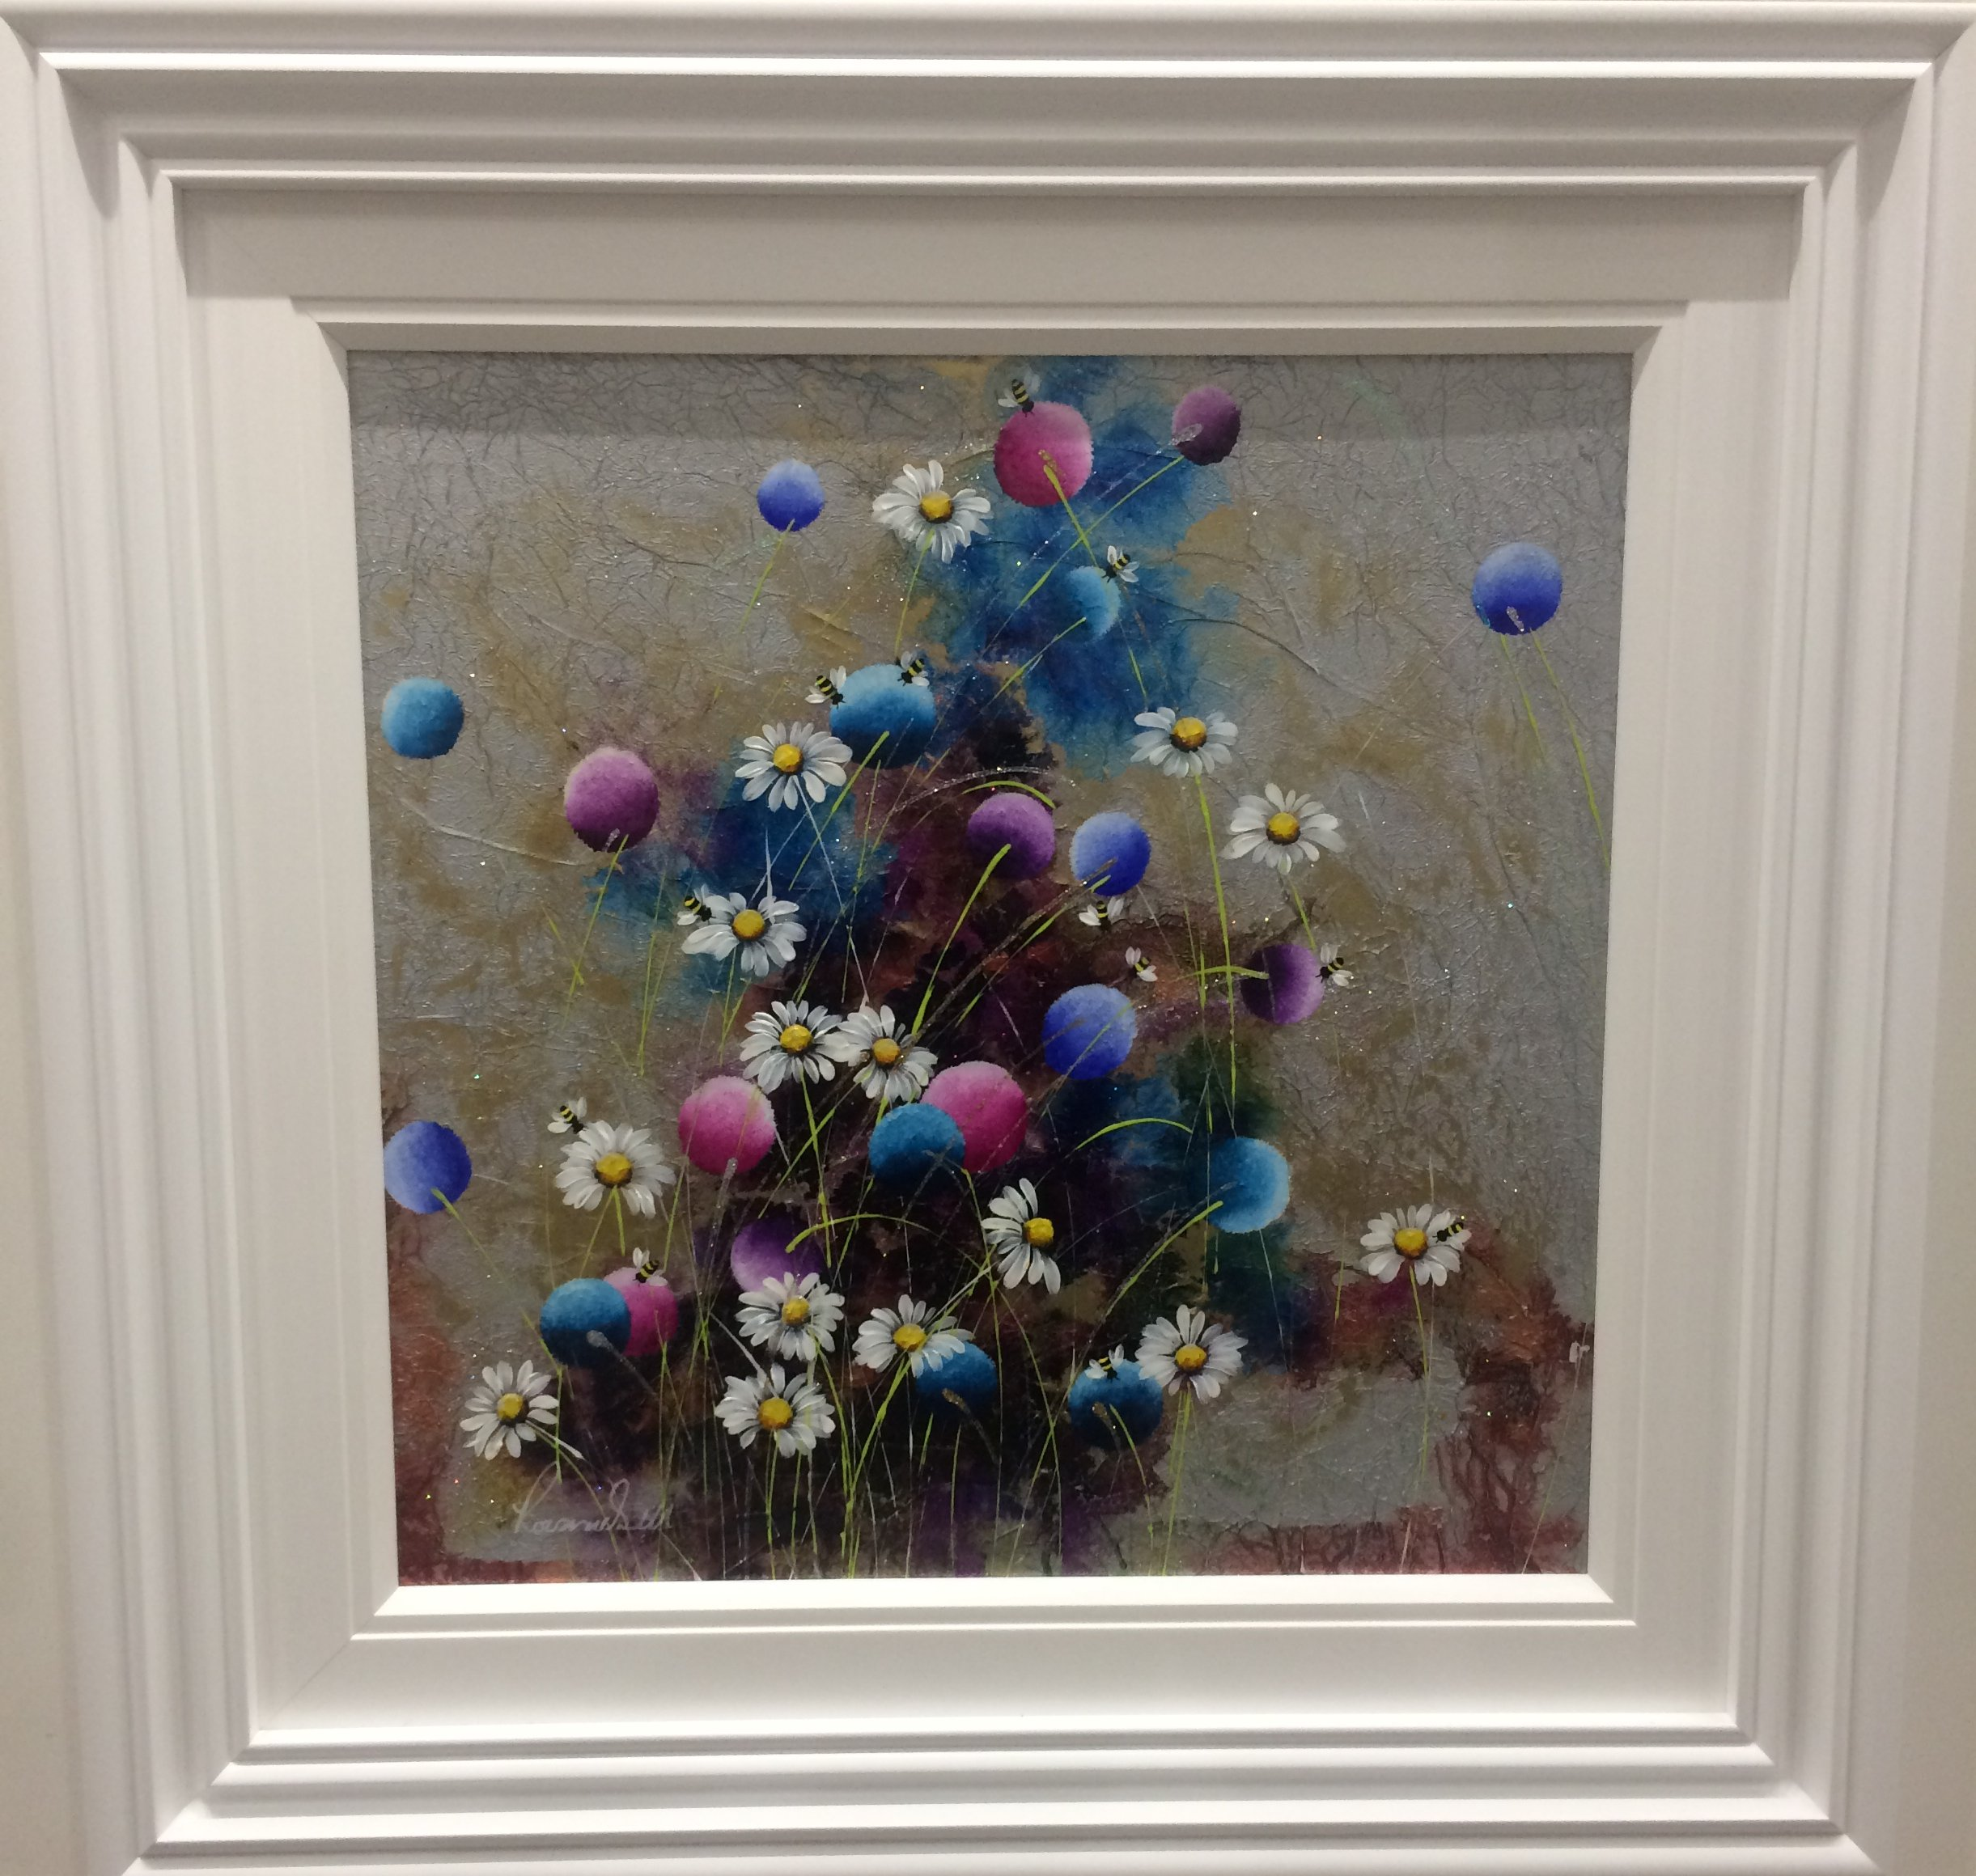 Floral Sparkle by Rozanne Bell